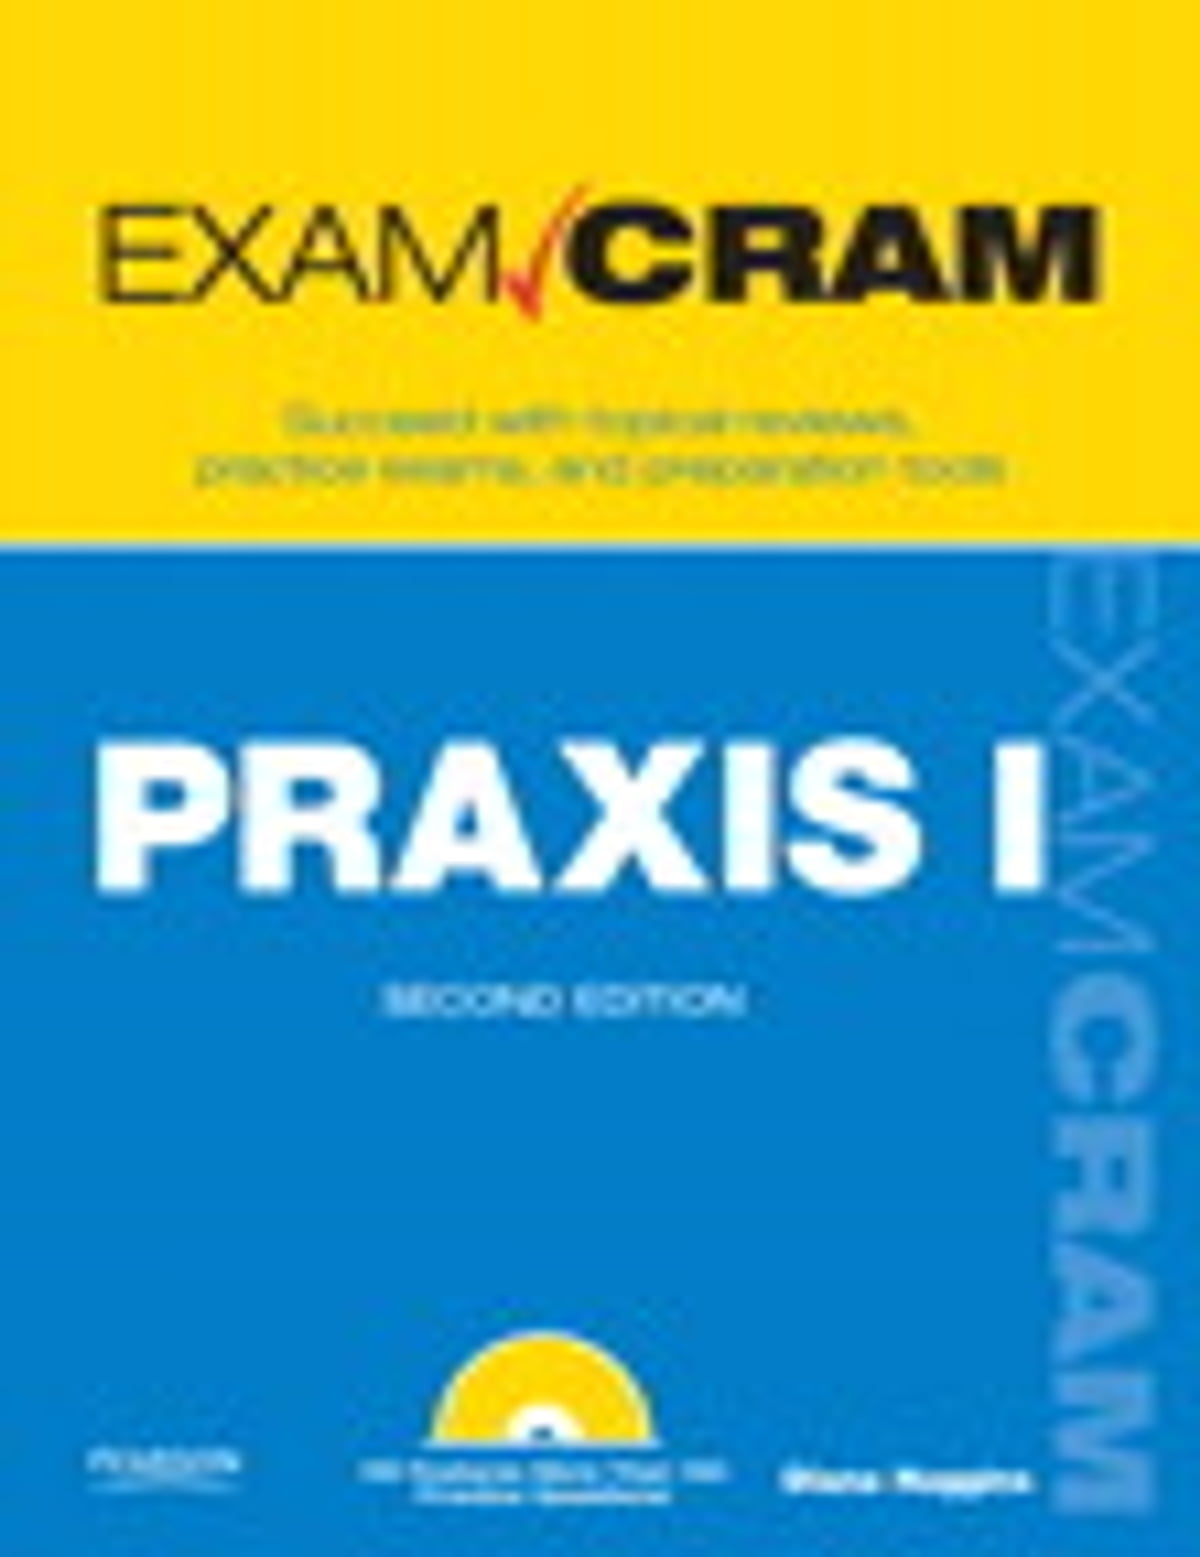 photograph regarding Praxis 1 Practice Test Printable identify PRAXIS I Examination Cram e-book through Diana Huggins - Rakuten Kobo